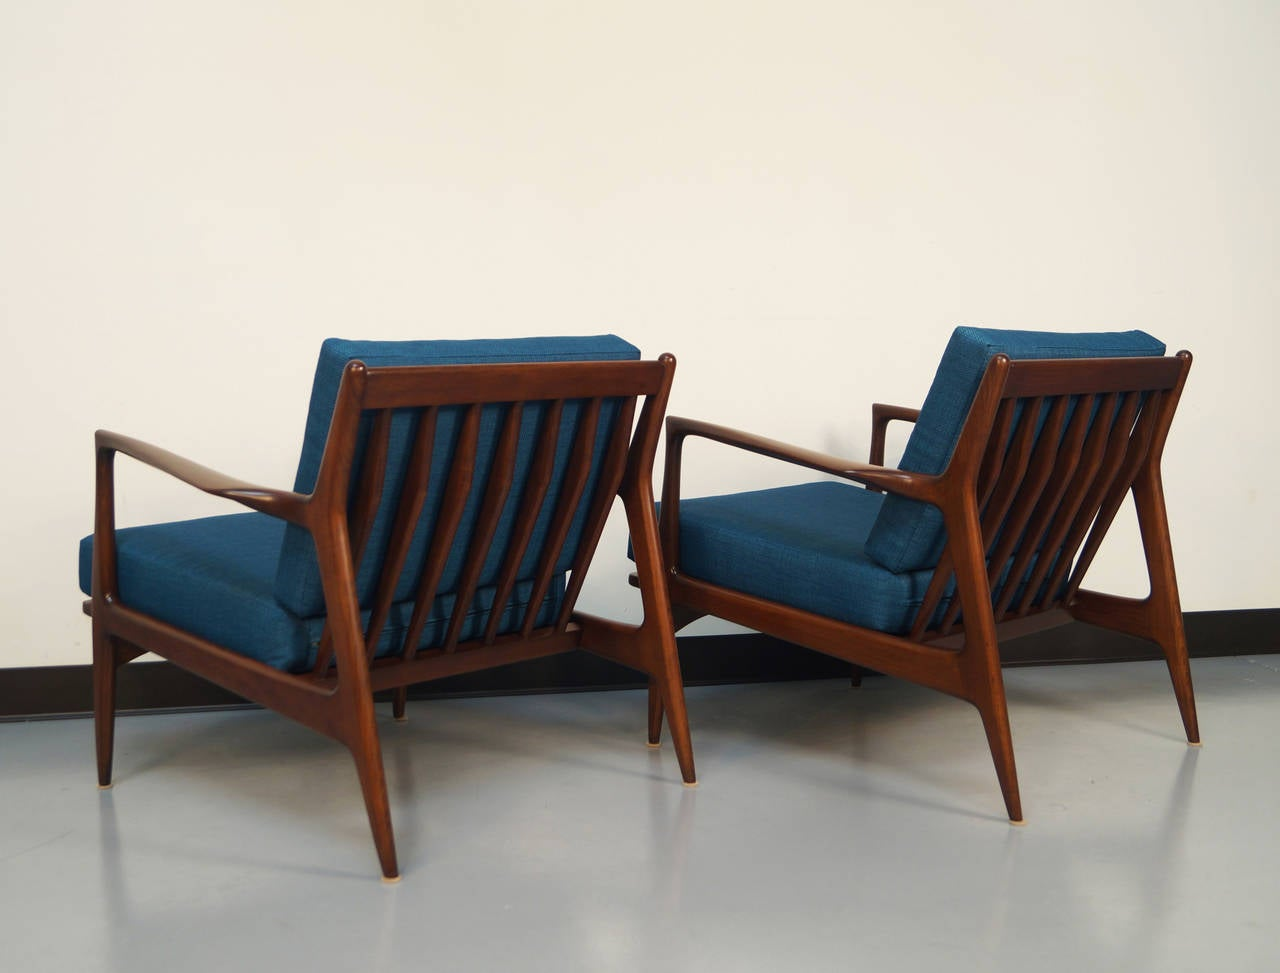 Danish modern lounge chairs by ib kofod larsen at 1stdibs for Stylish lounge furniture